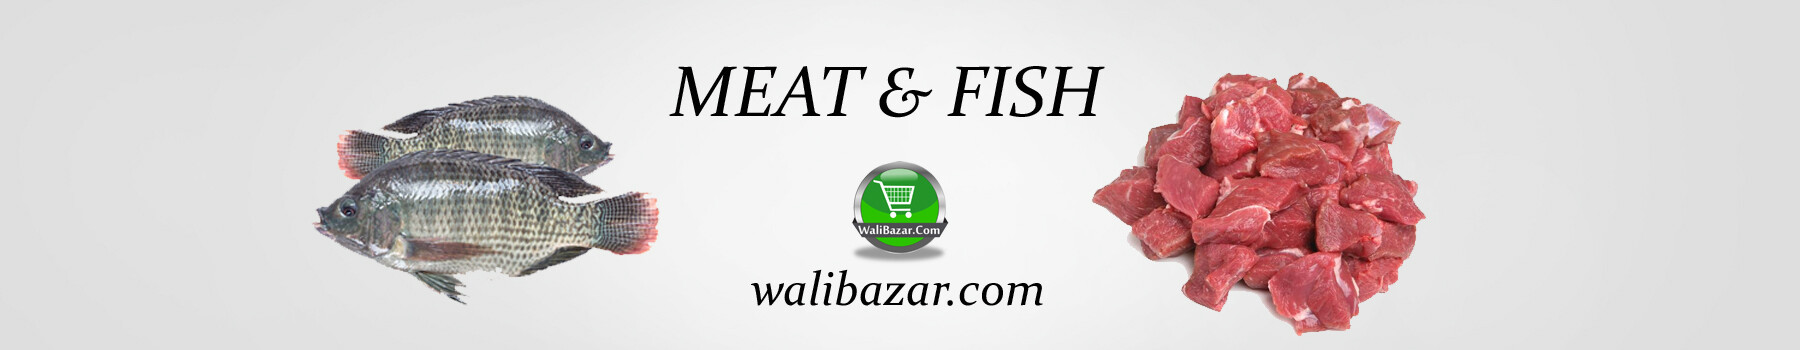 MEAT & FISH